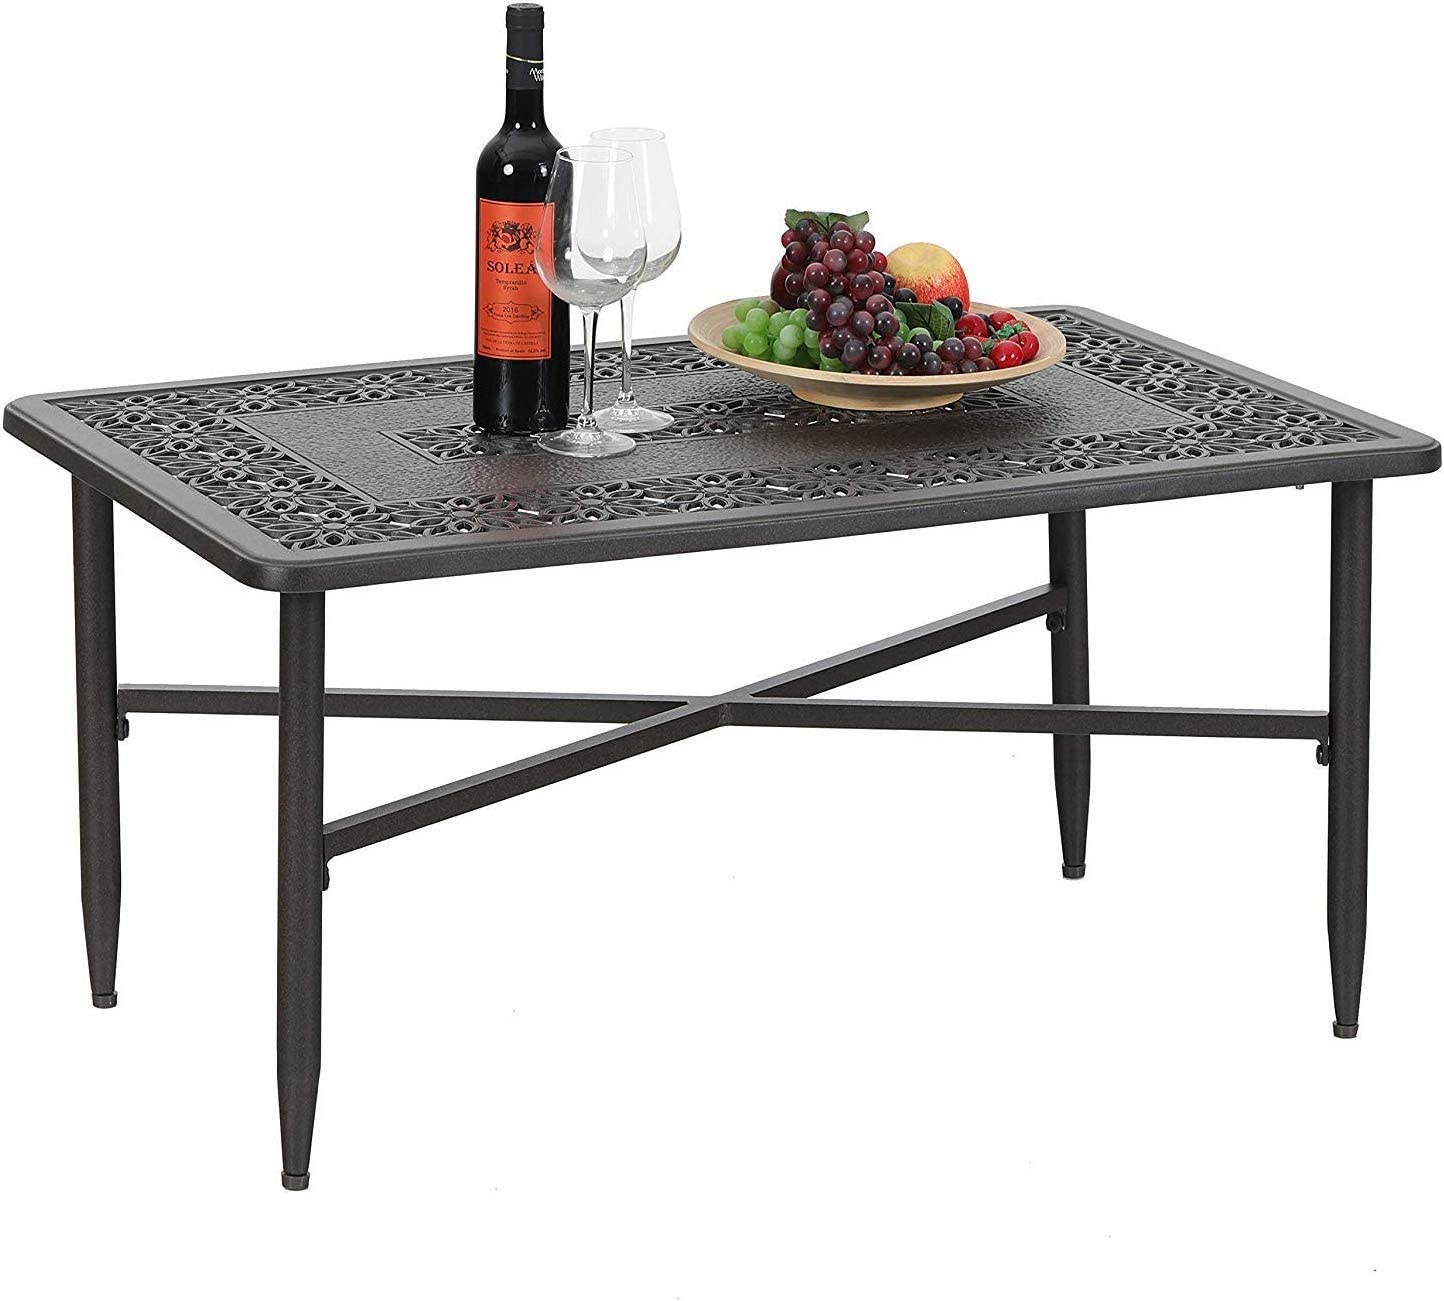 PHI VILLA 38.6 x 23 Outdoor Furniture Patio Retro Tea Dining Table Cast Aluminum Rectangular Elegant Bistro Coffee Table, Dark Brown